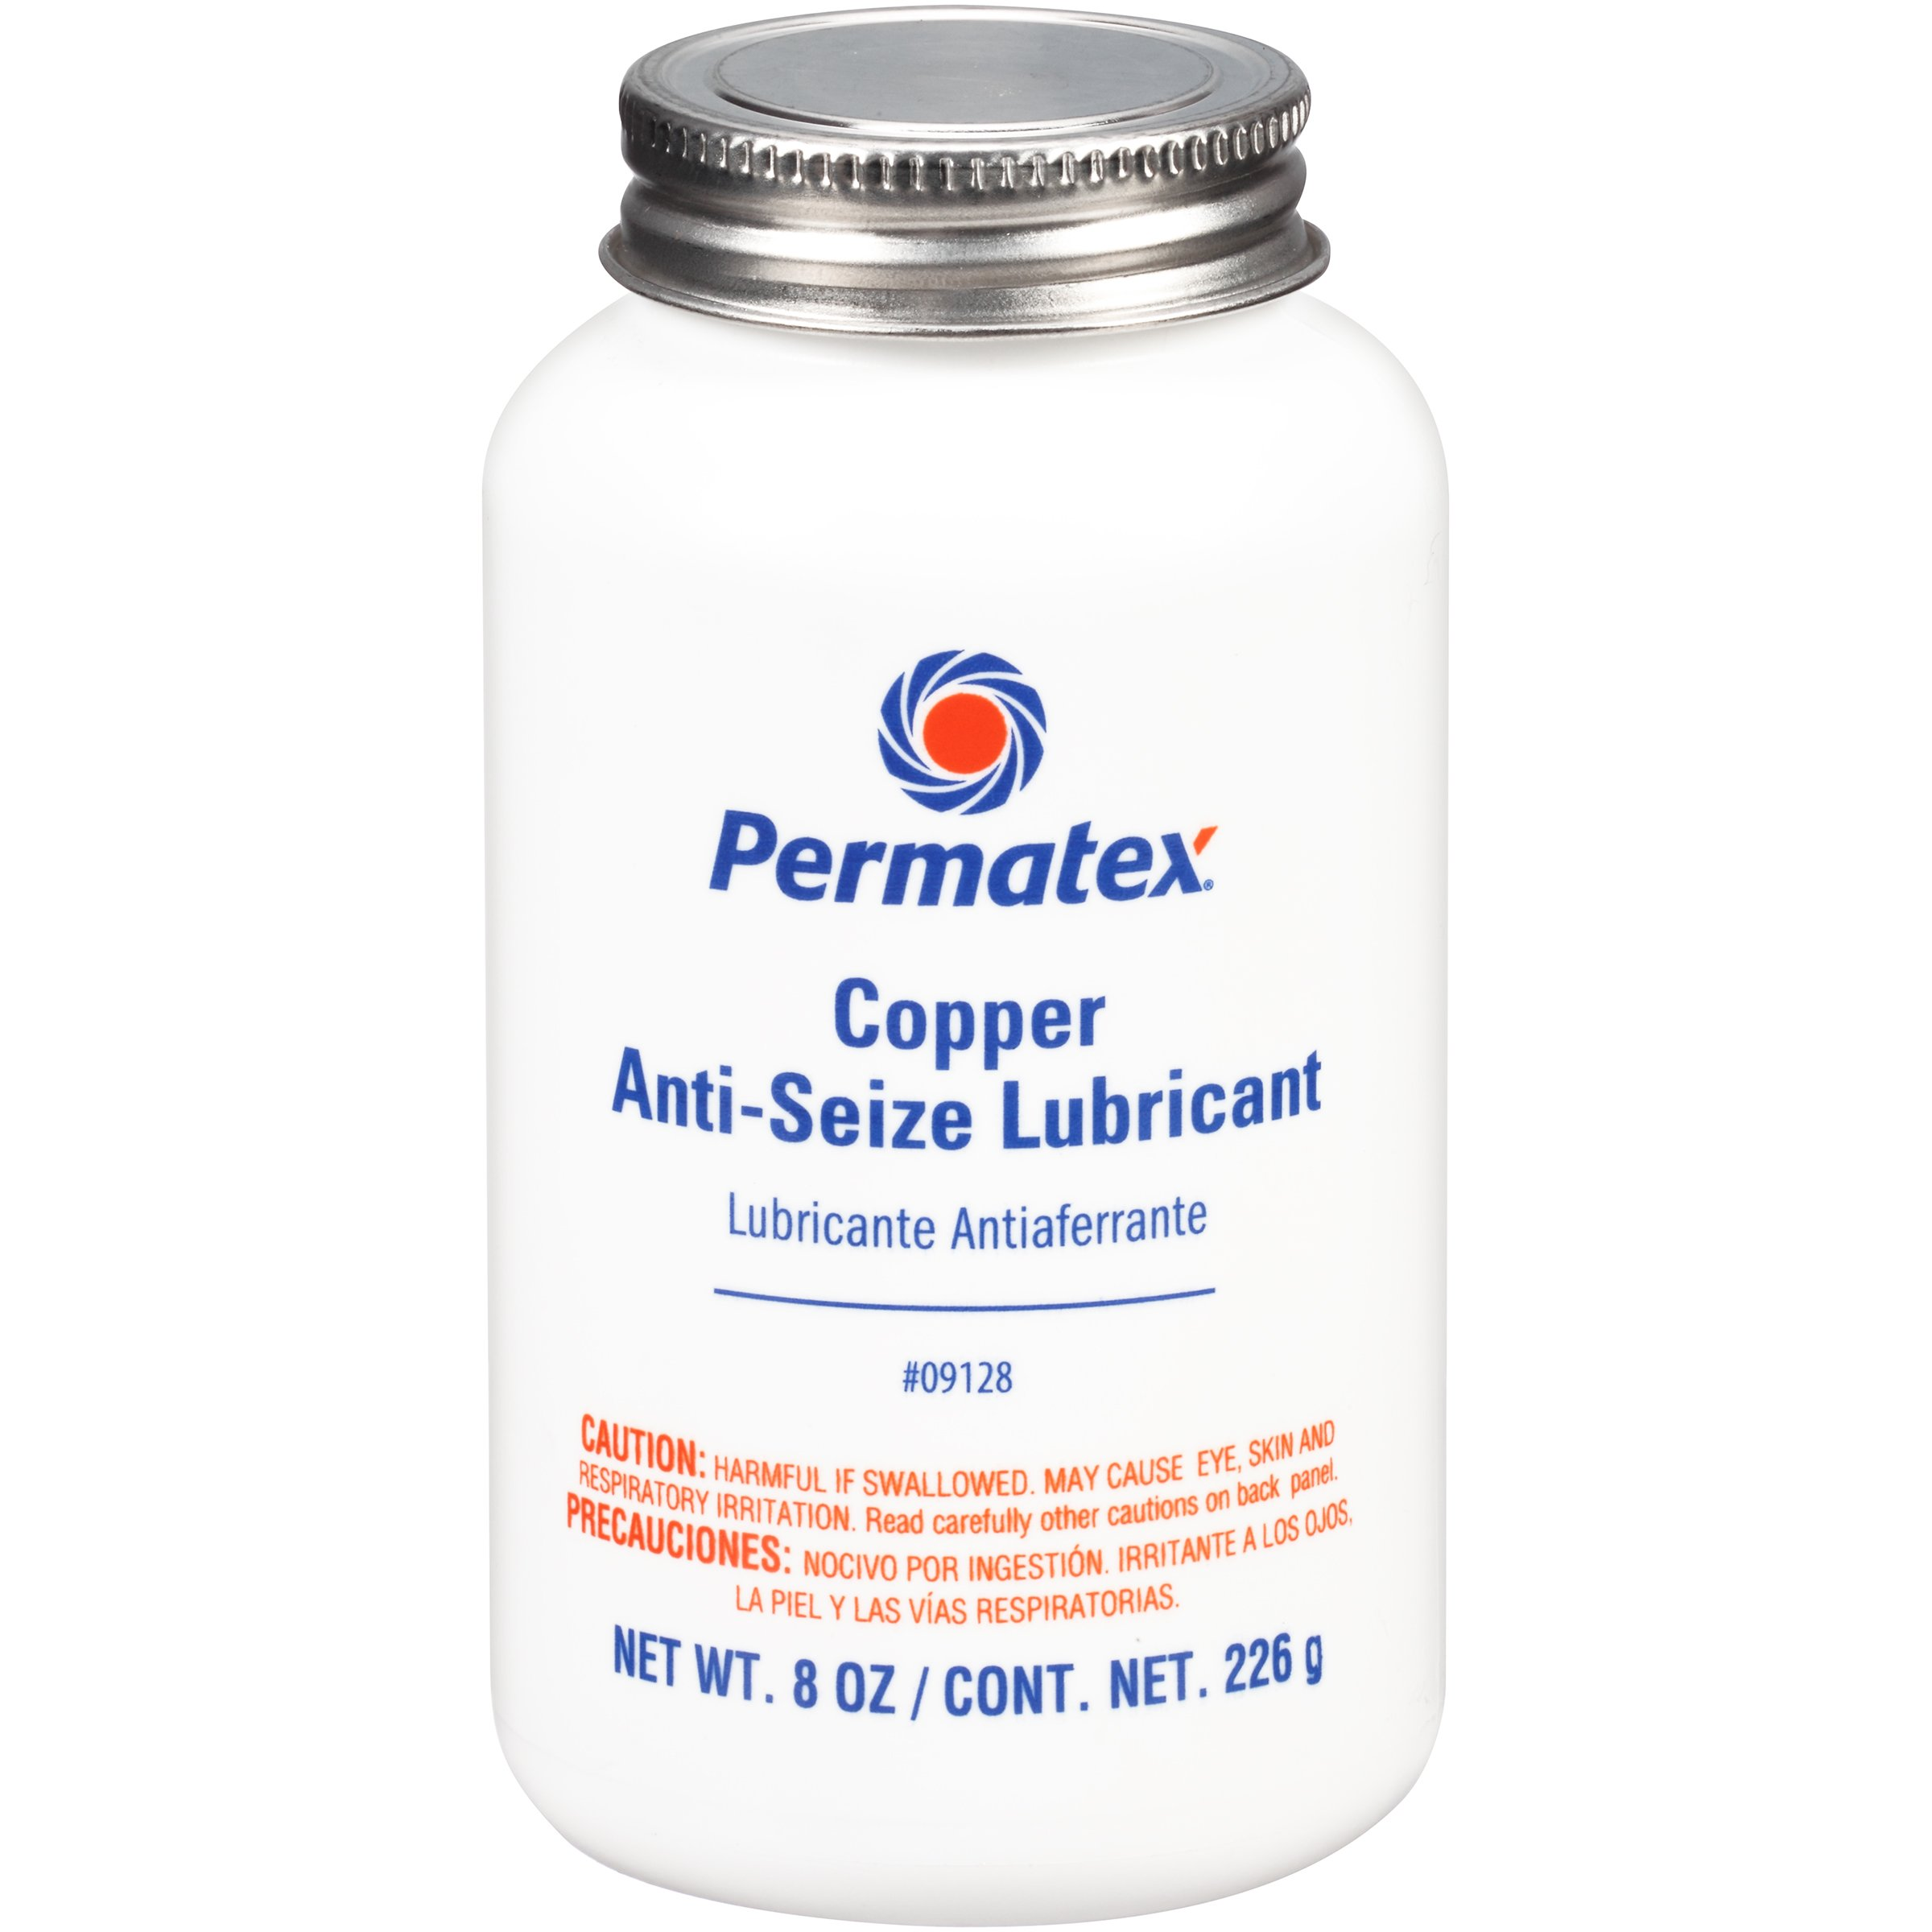 Permatex 09128-6PK Copper Anti-Seize Lubricant - 8 oz., (Pack of 6) by Permatex